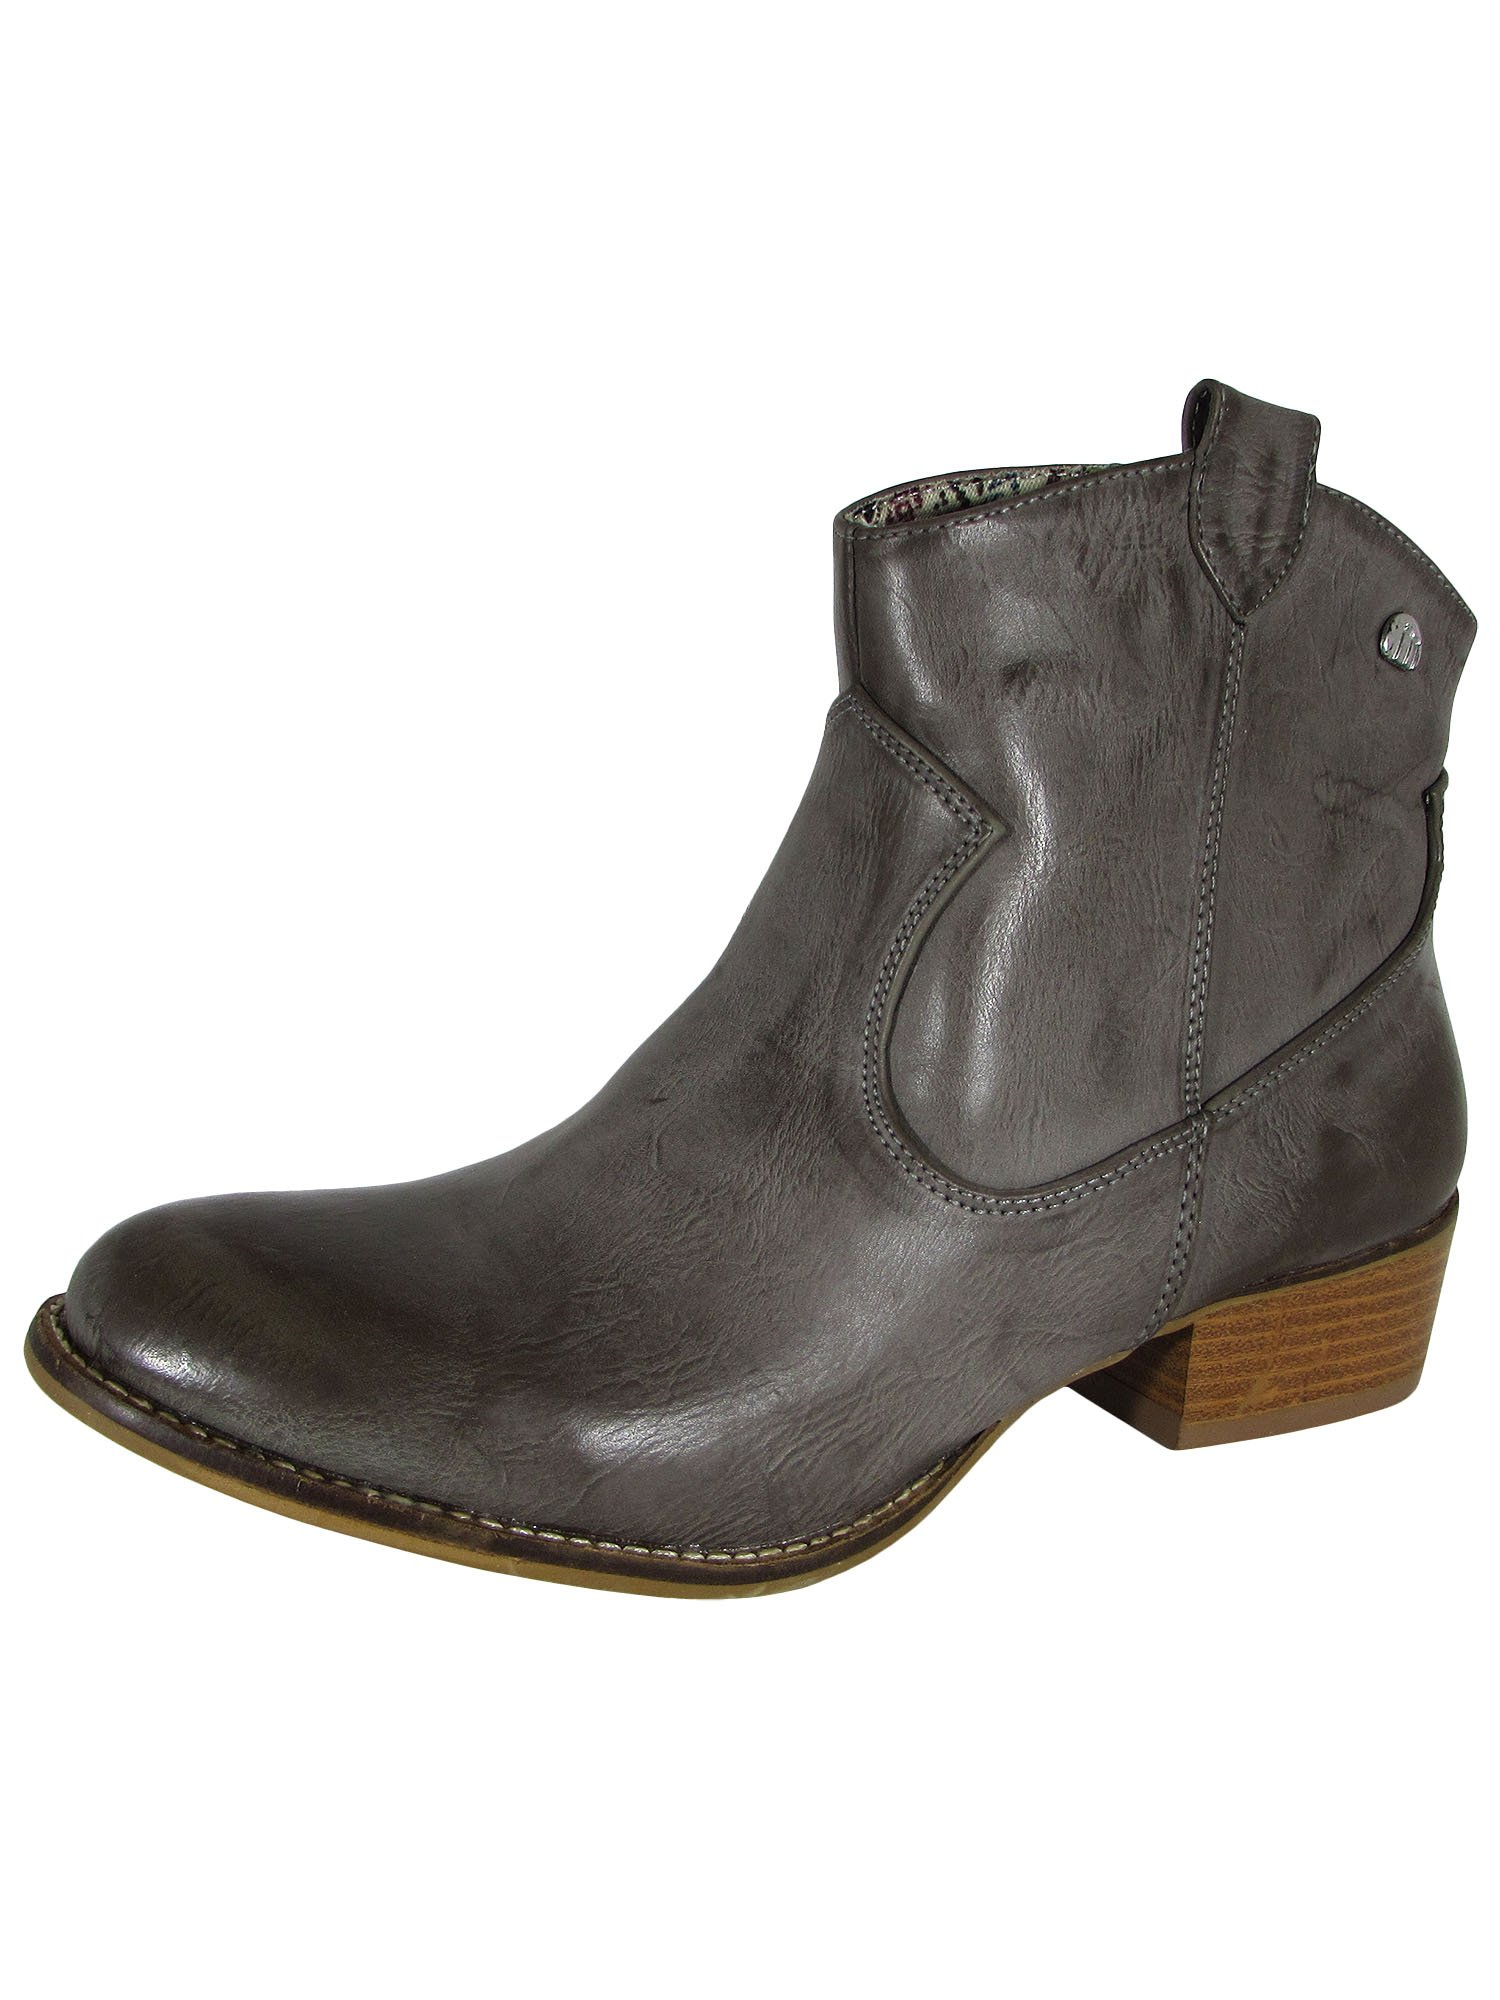 MTNG Mustang Womens 58412 Western Ankle Boot Shoes, Grey, 41 EU / 9.5-10 US